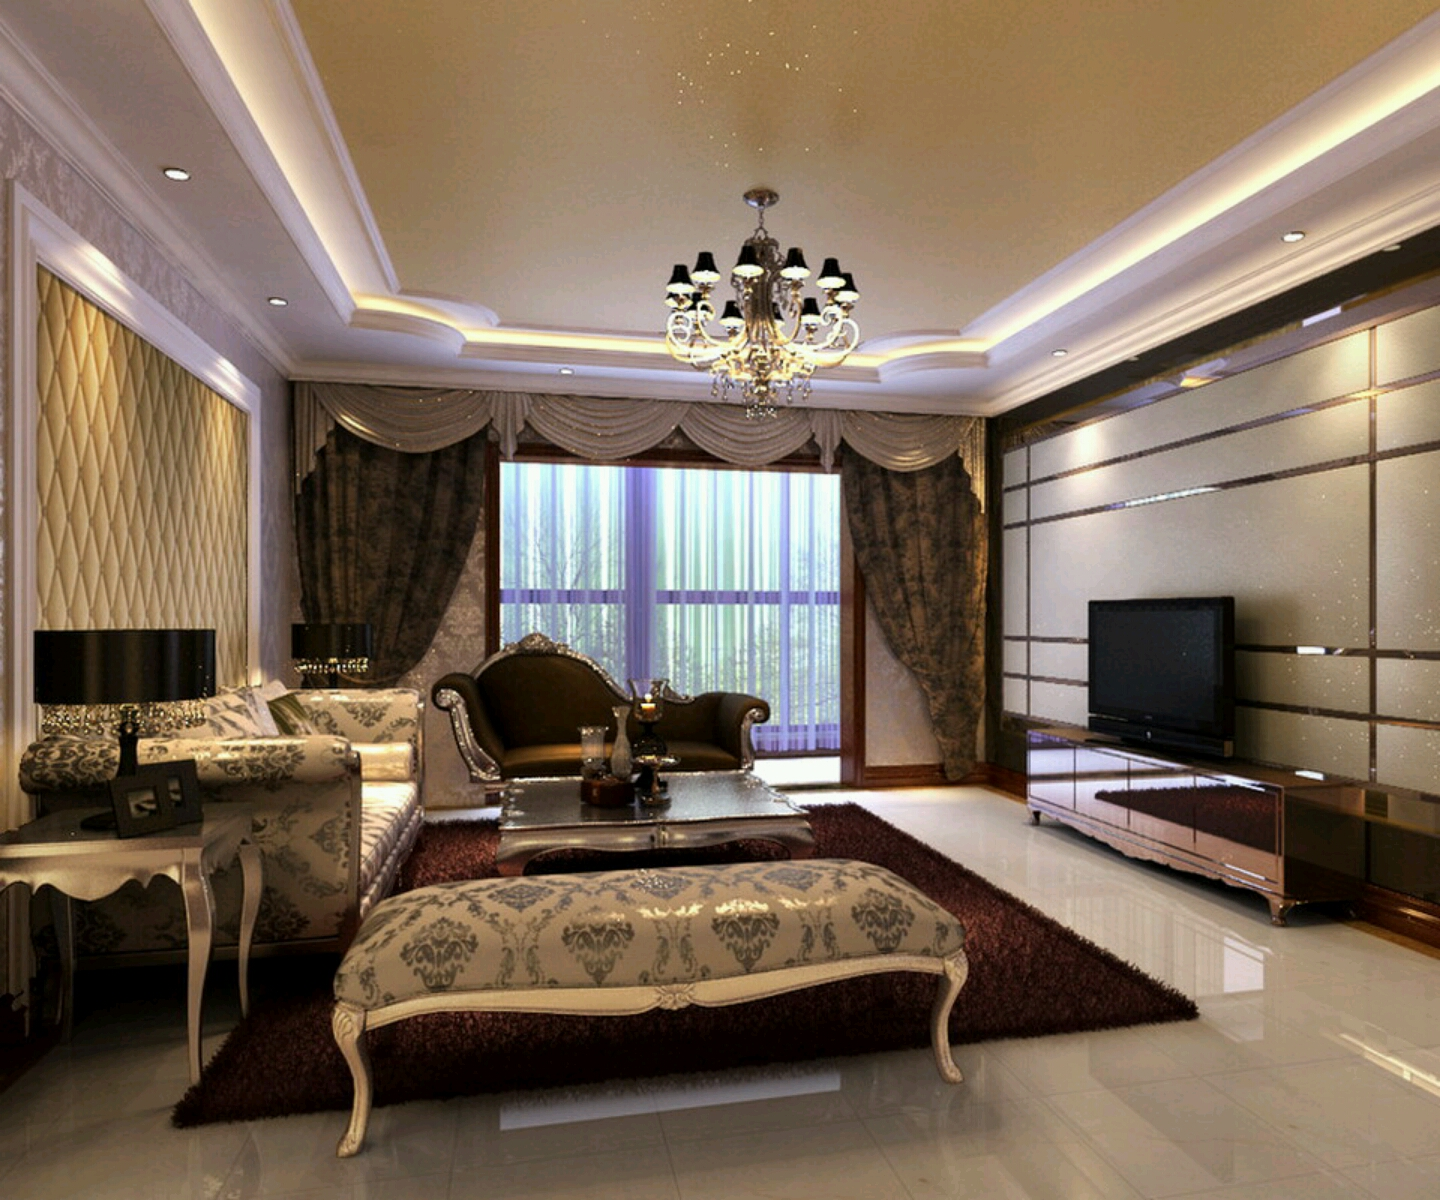 Home Room Design Photos Of New Home Designs Latest Luxury Homes Interior Decoration